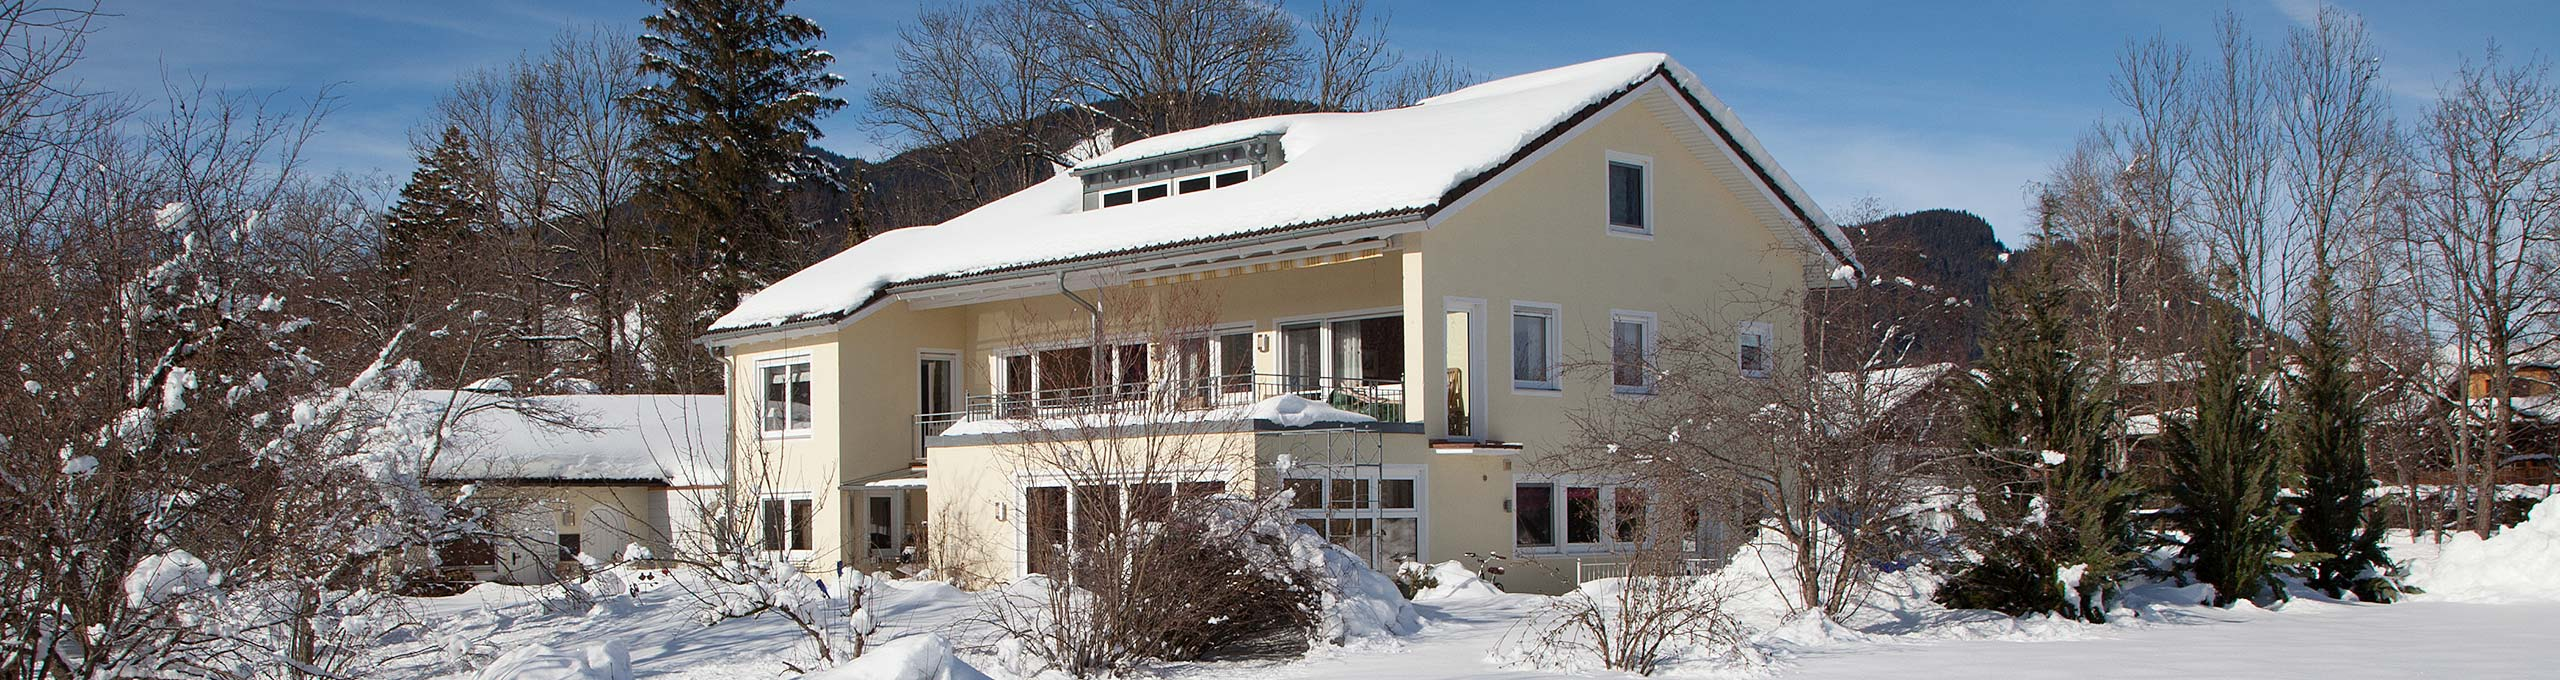 Chalet Manhard Winter